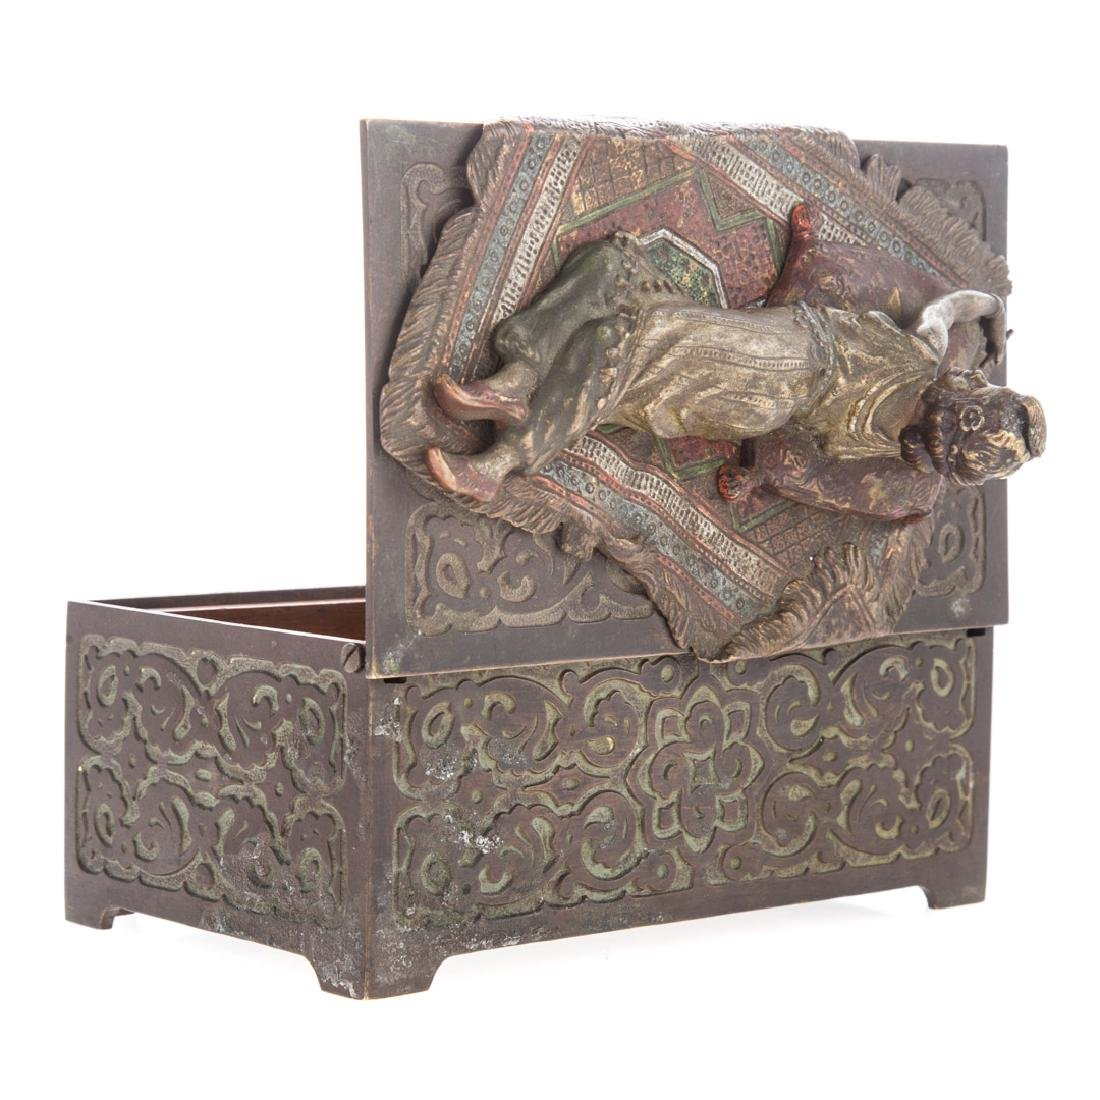 Vienna cold painted bronze cigarette box - 4